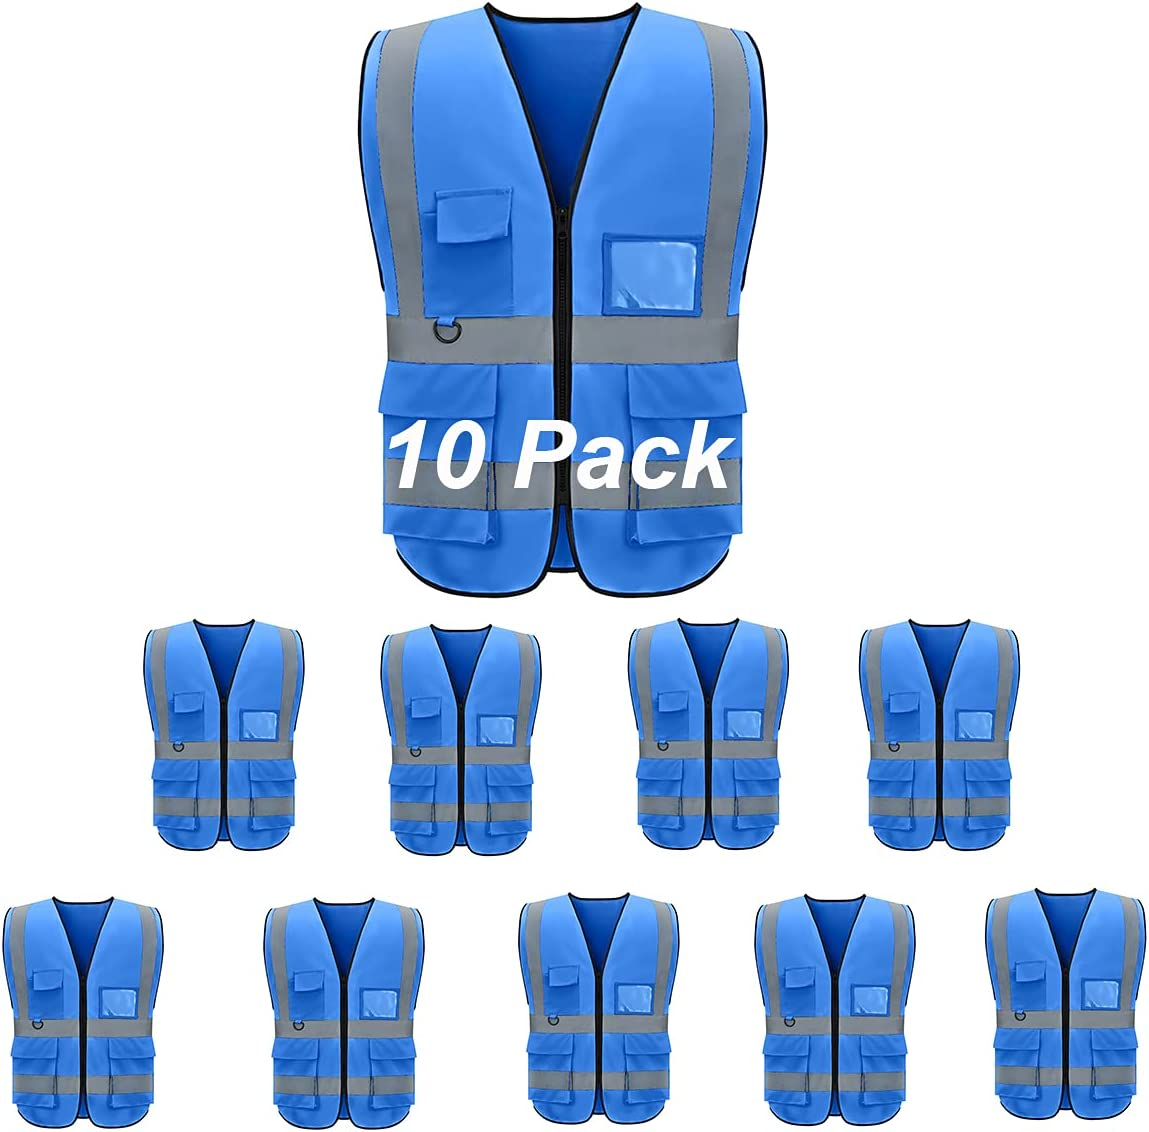 10 Pack Safety 信用 Vests Reflective Strips Zipper with Pockets C and 店舗